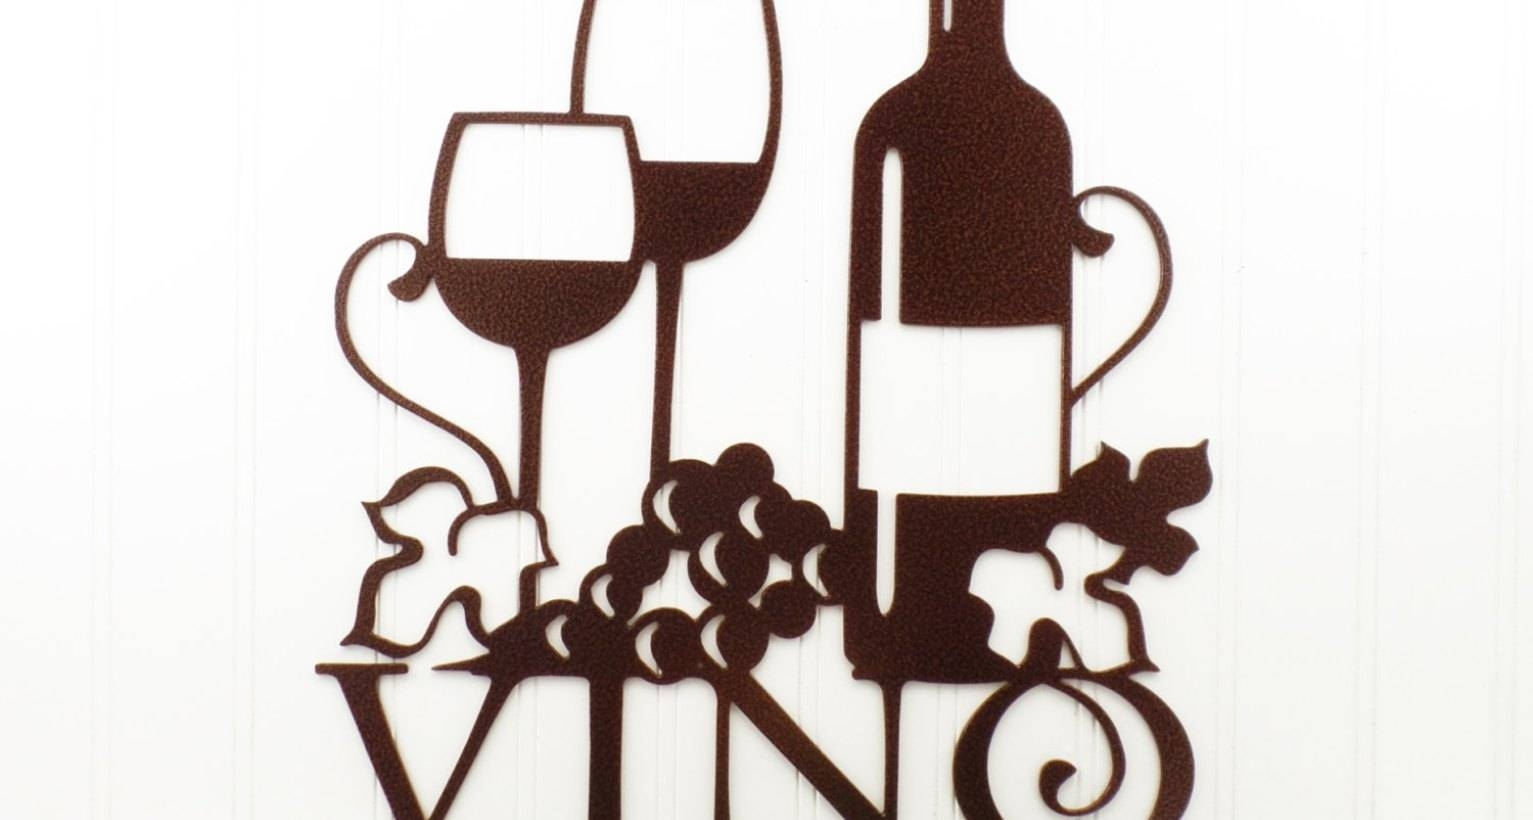 Signs : Stunning Wine Themed Wall Art 29 In Black And Teal Wall Regarding Recent Wine Theme Wall Art (View 3 of 20)